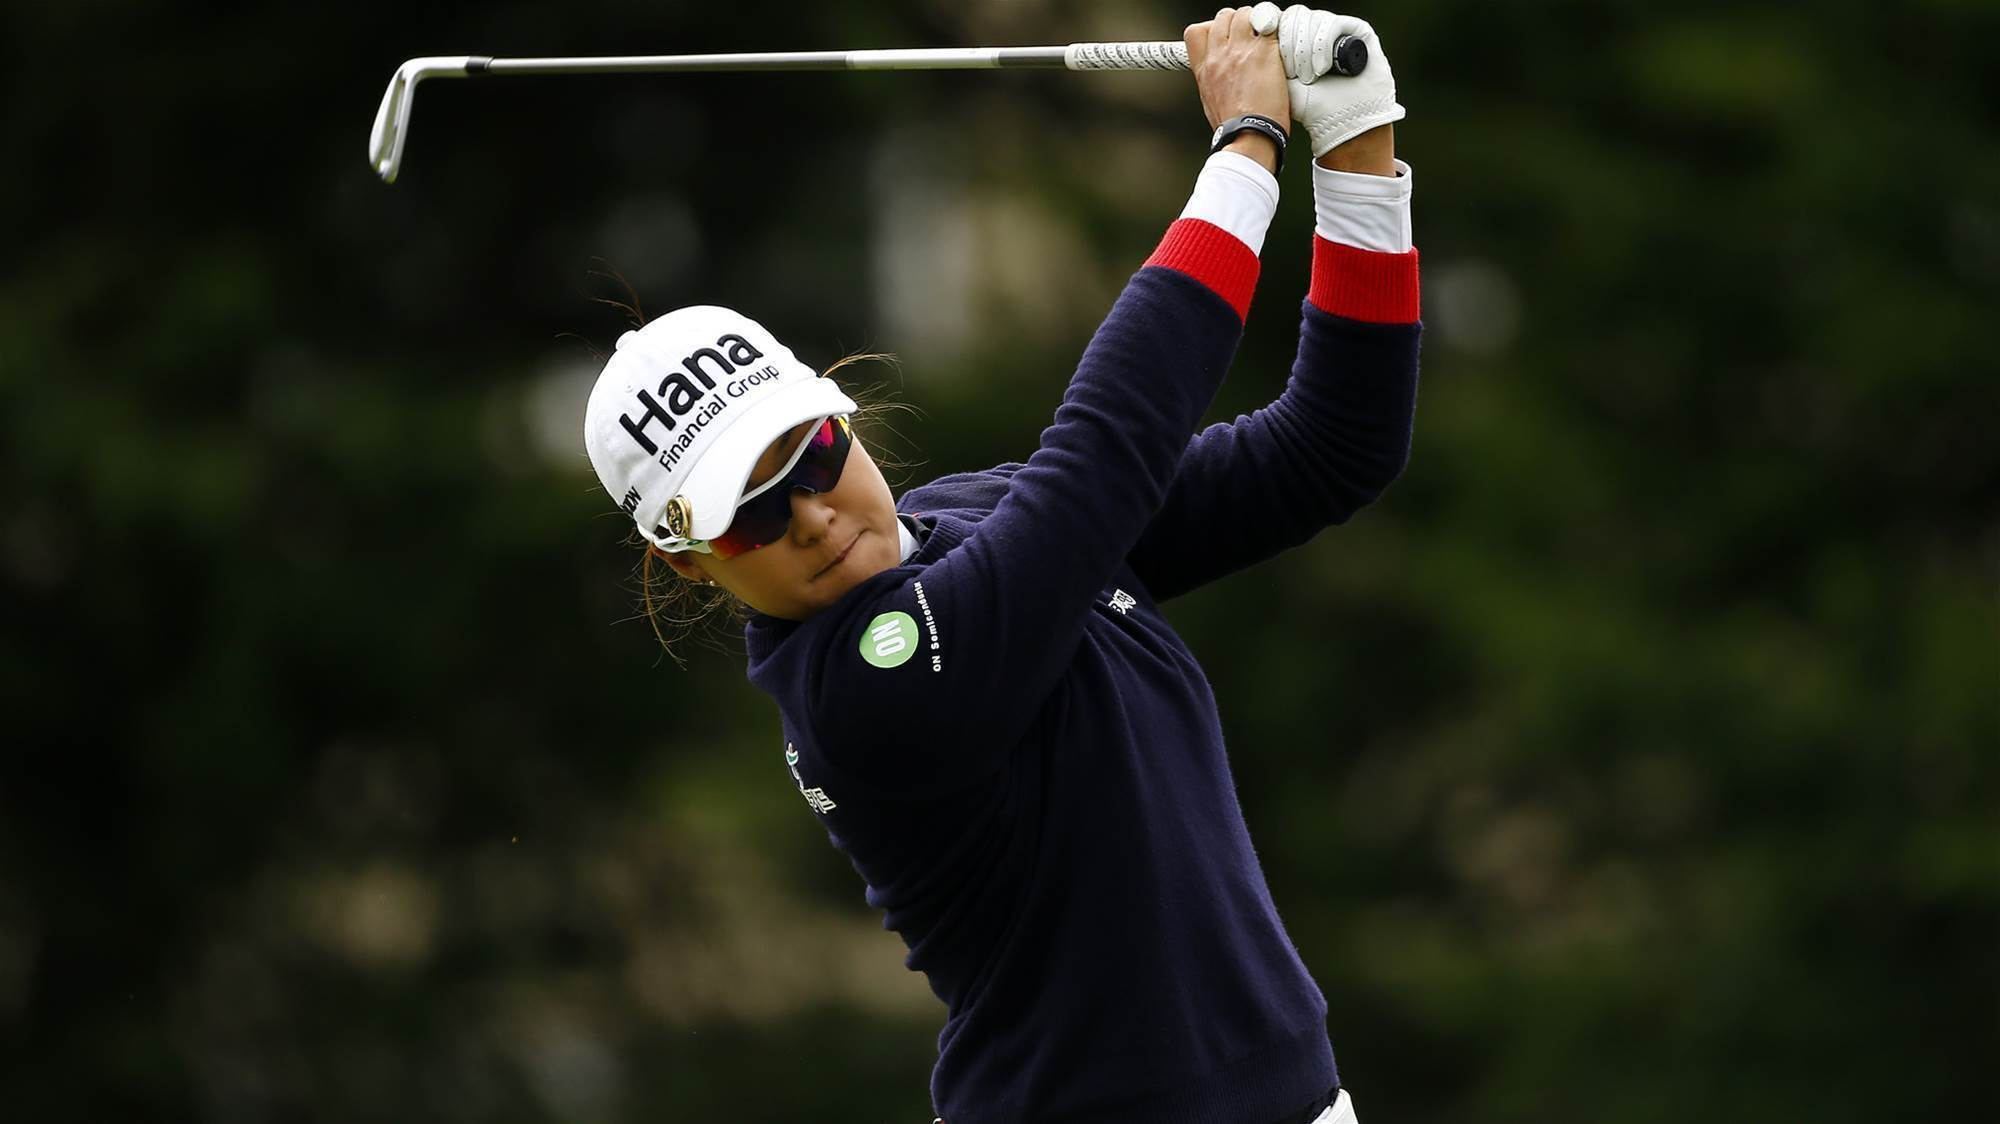 Minjee Lee focussed on major breakthrough